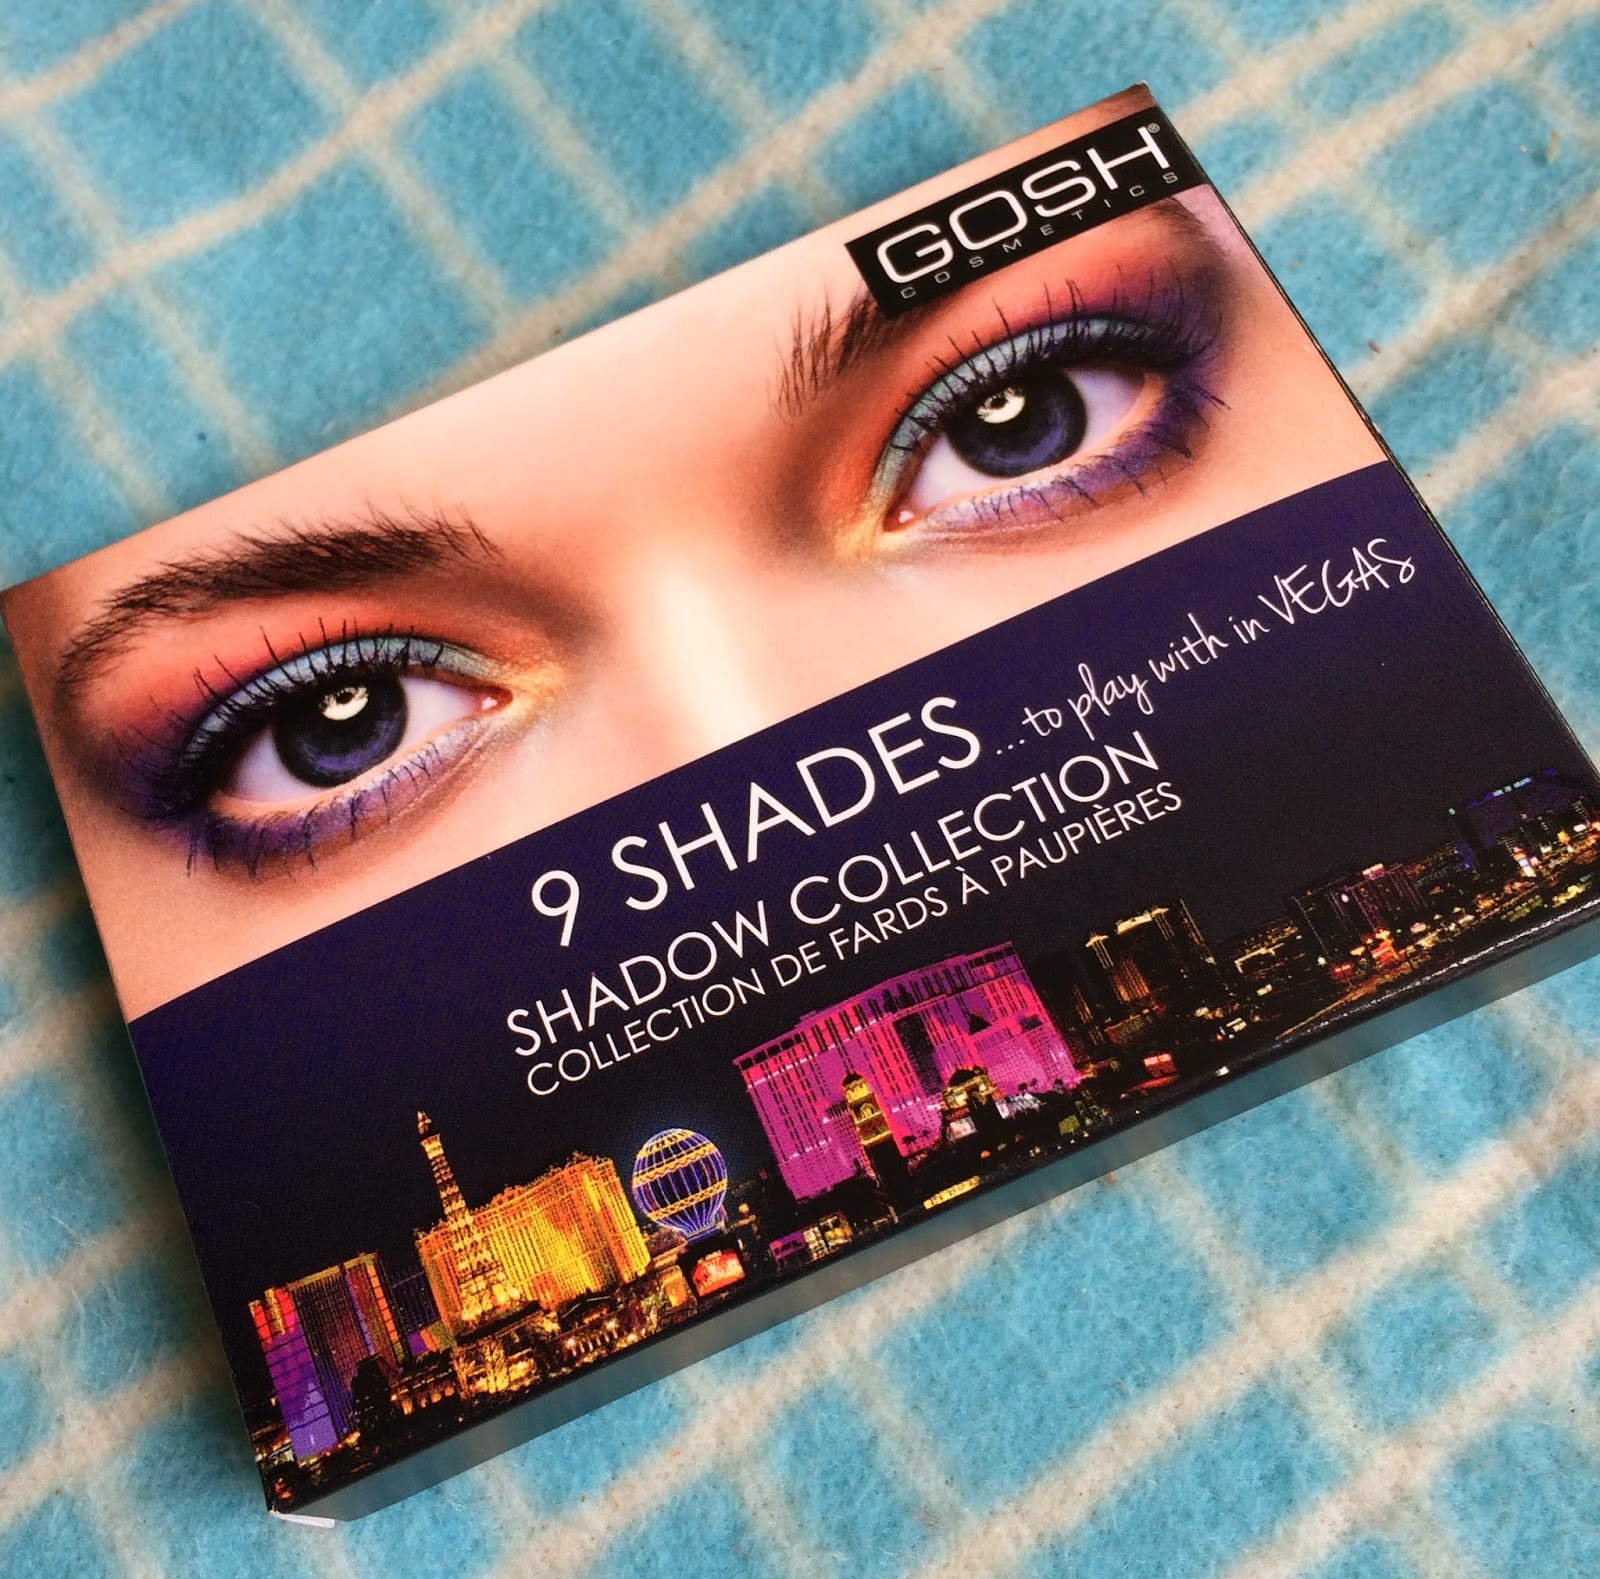 gosh-to-play-with-in-vegas-palette-9-shades-shadow-collection